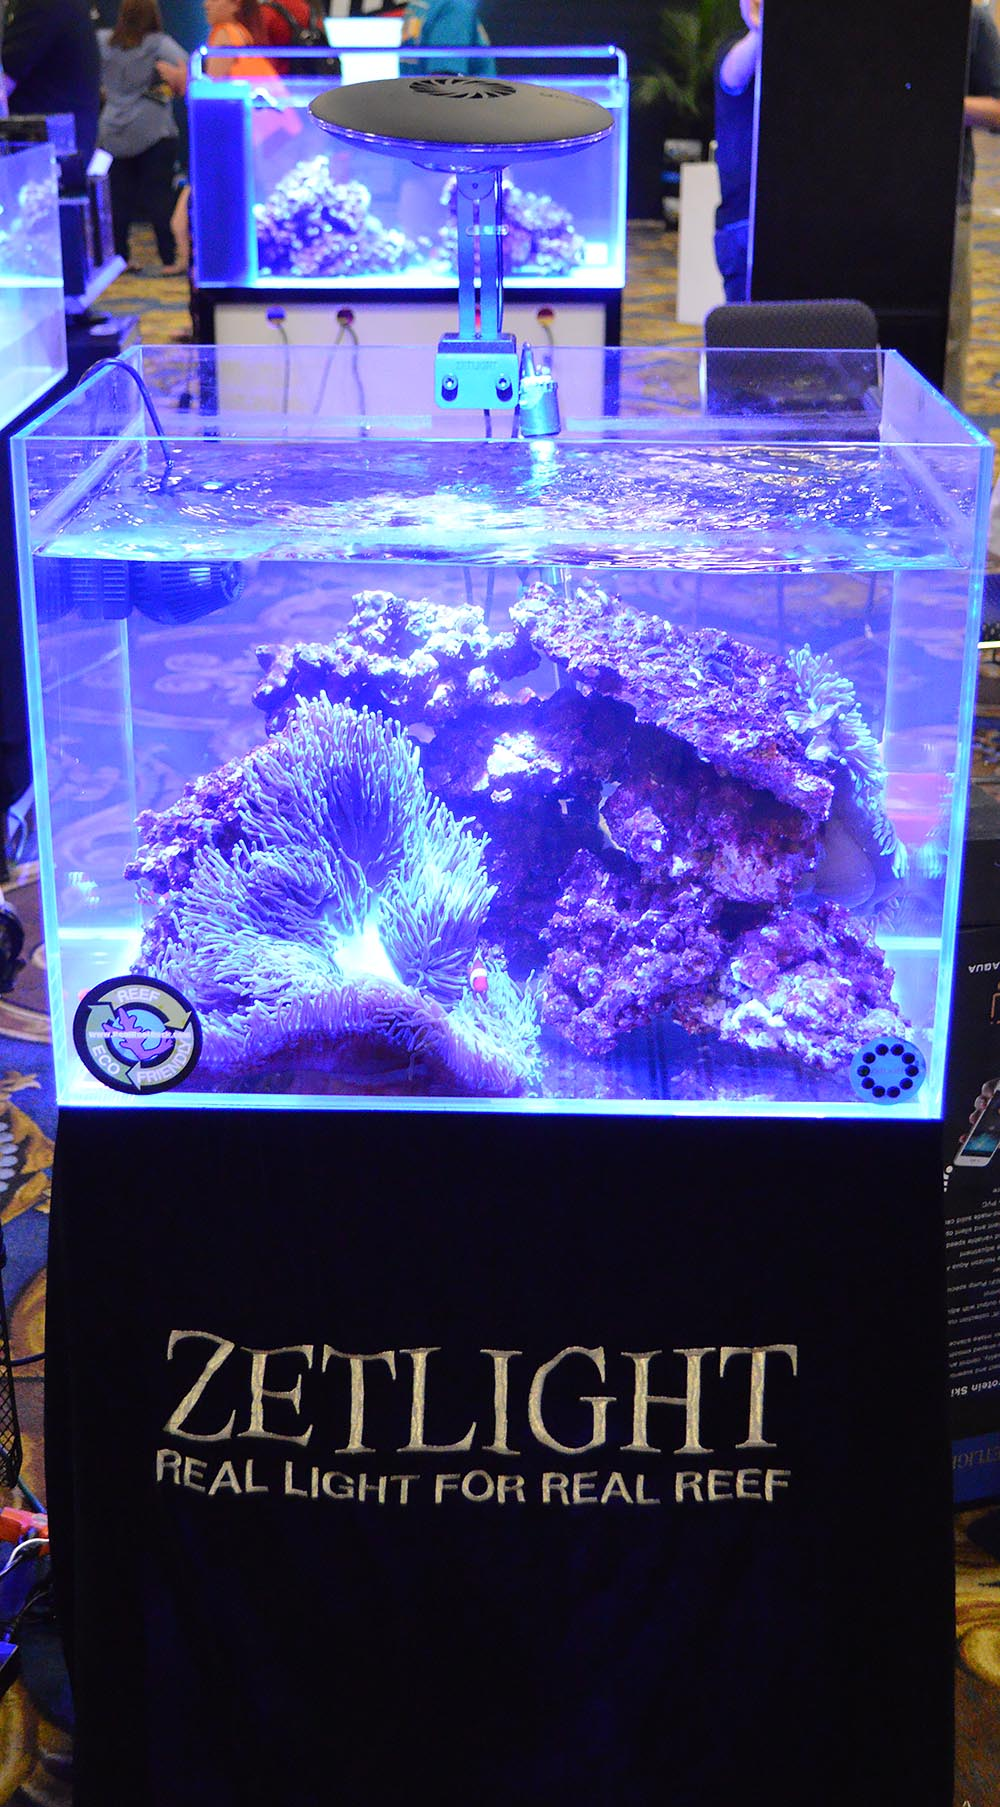 Simple and effective - a clownfish and anemone dominate this modestly-sized aquarium display by Zetlight & Ming Trading.